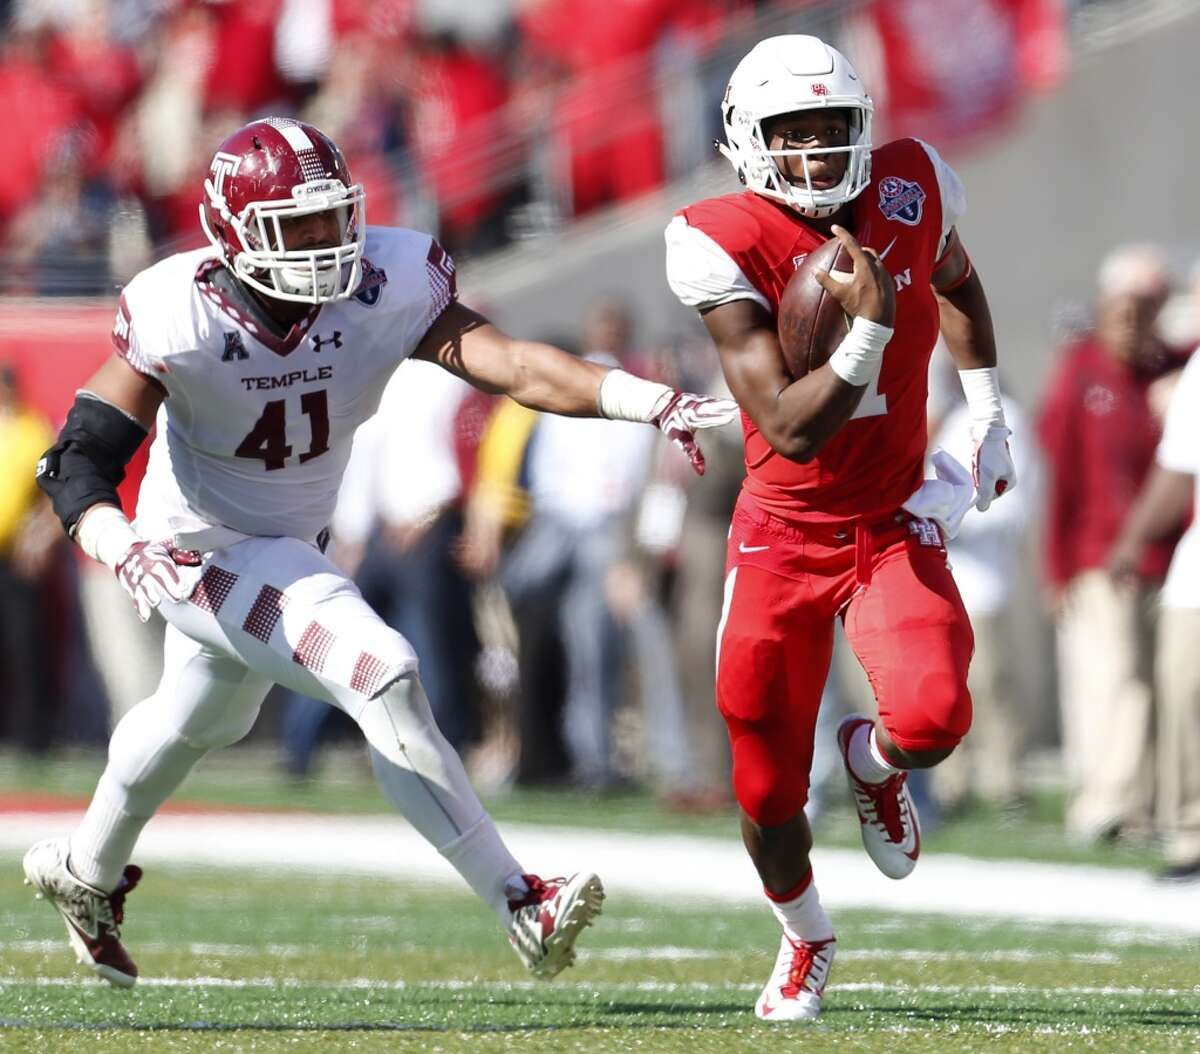 UH quarterback Greg Ward and his Cougars teammates will be in the national spotlight Saturday with a high-profile game against No. 3 Oklahoma at NRG Stadium.